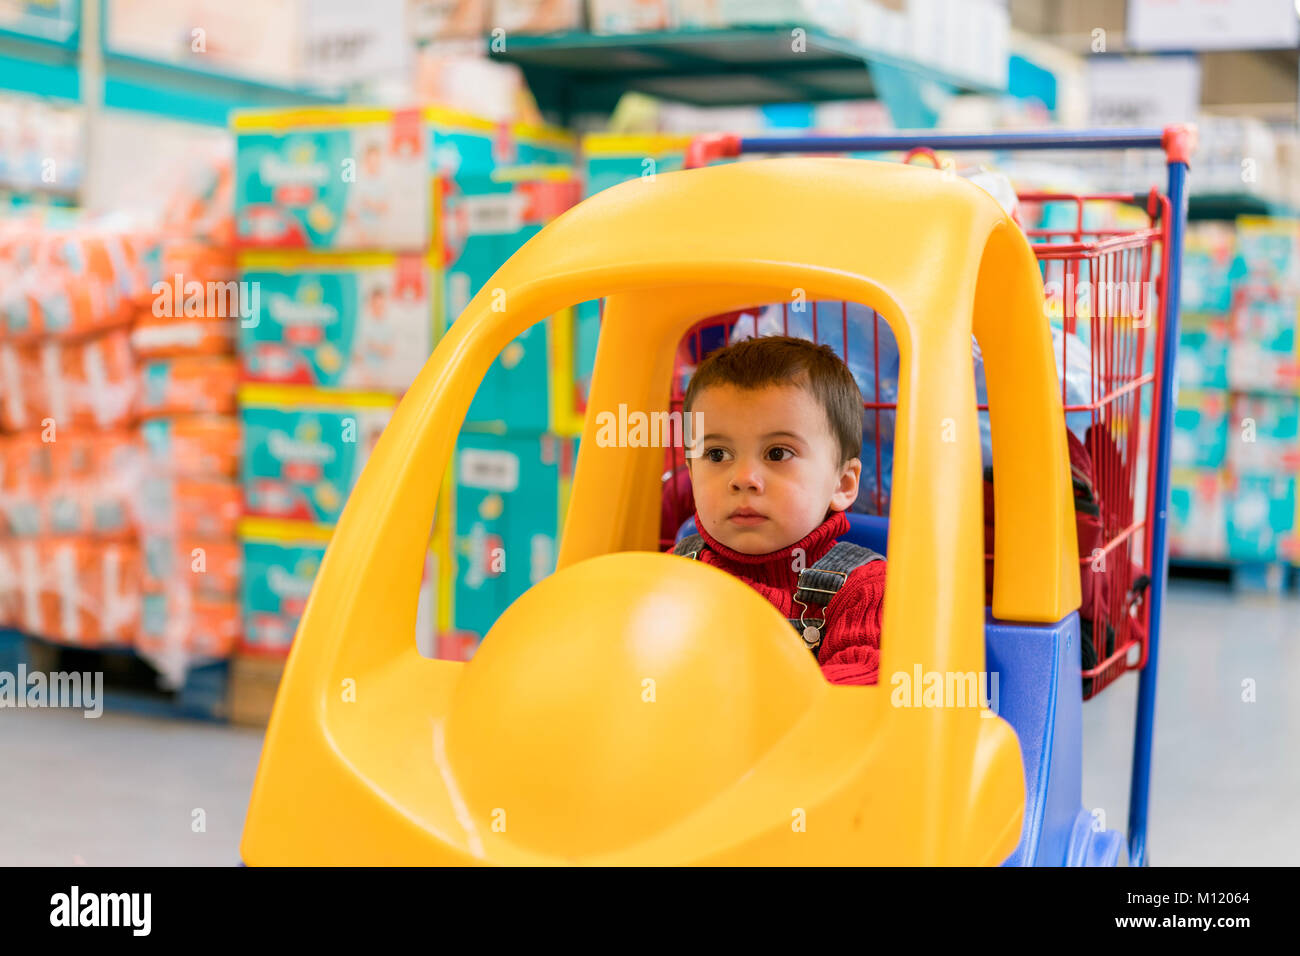 little cheerful boy in red sweater in a shopping cart in a shopping mall against a background of diapers - Stock Image